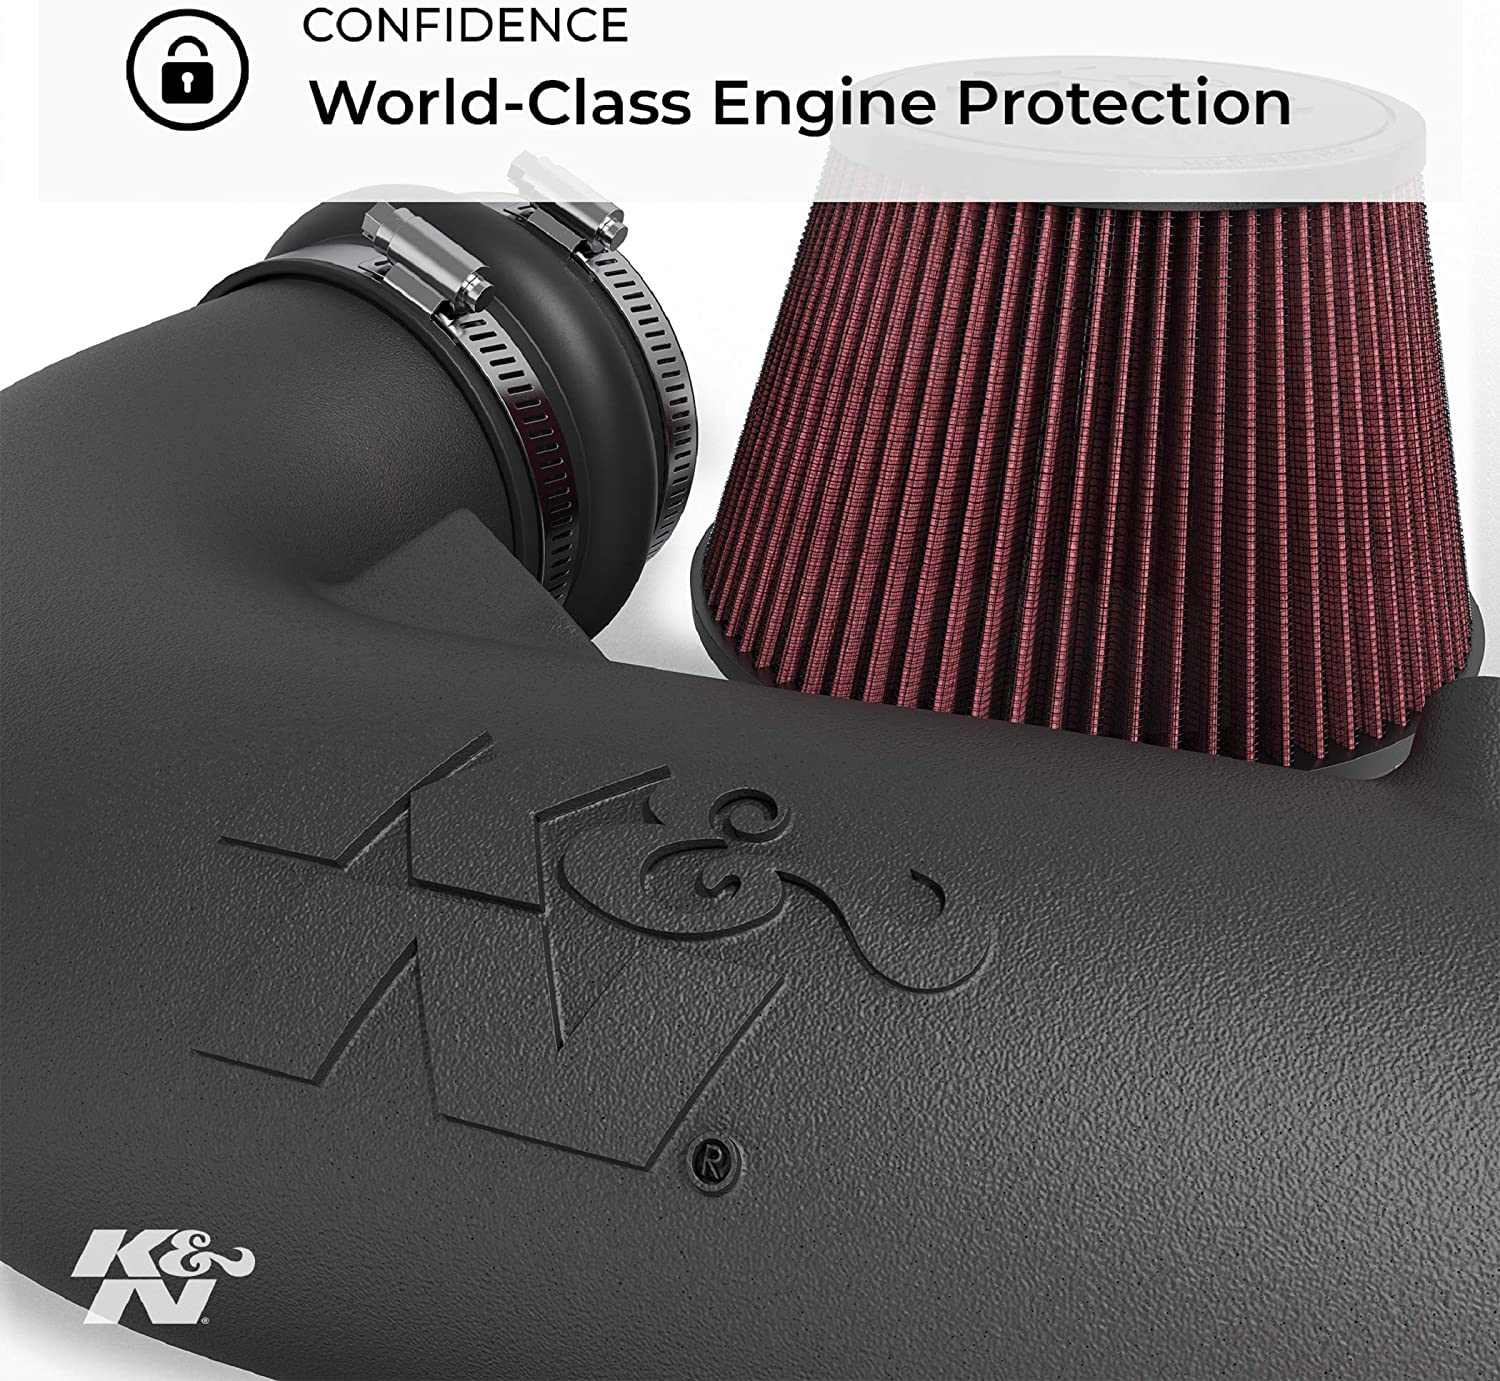 K/&N 57-0625 Washable and Reusable Car Performance Intake Kit